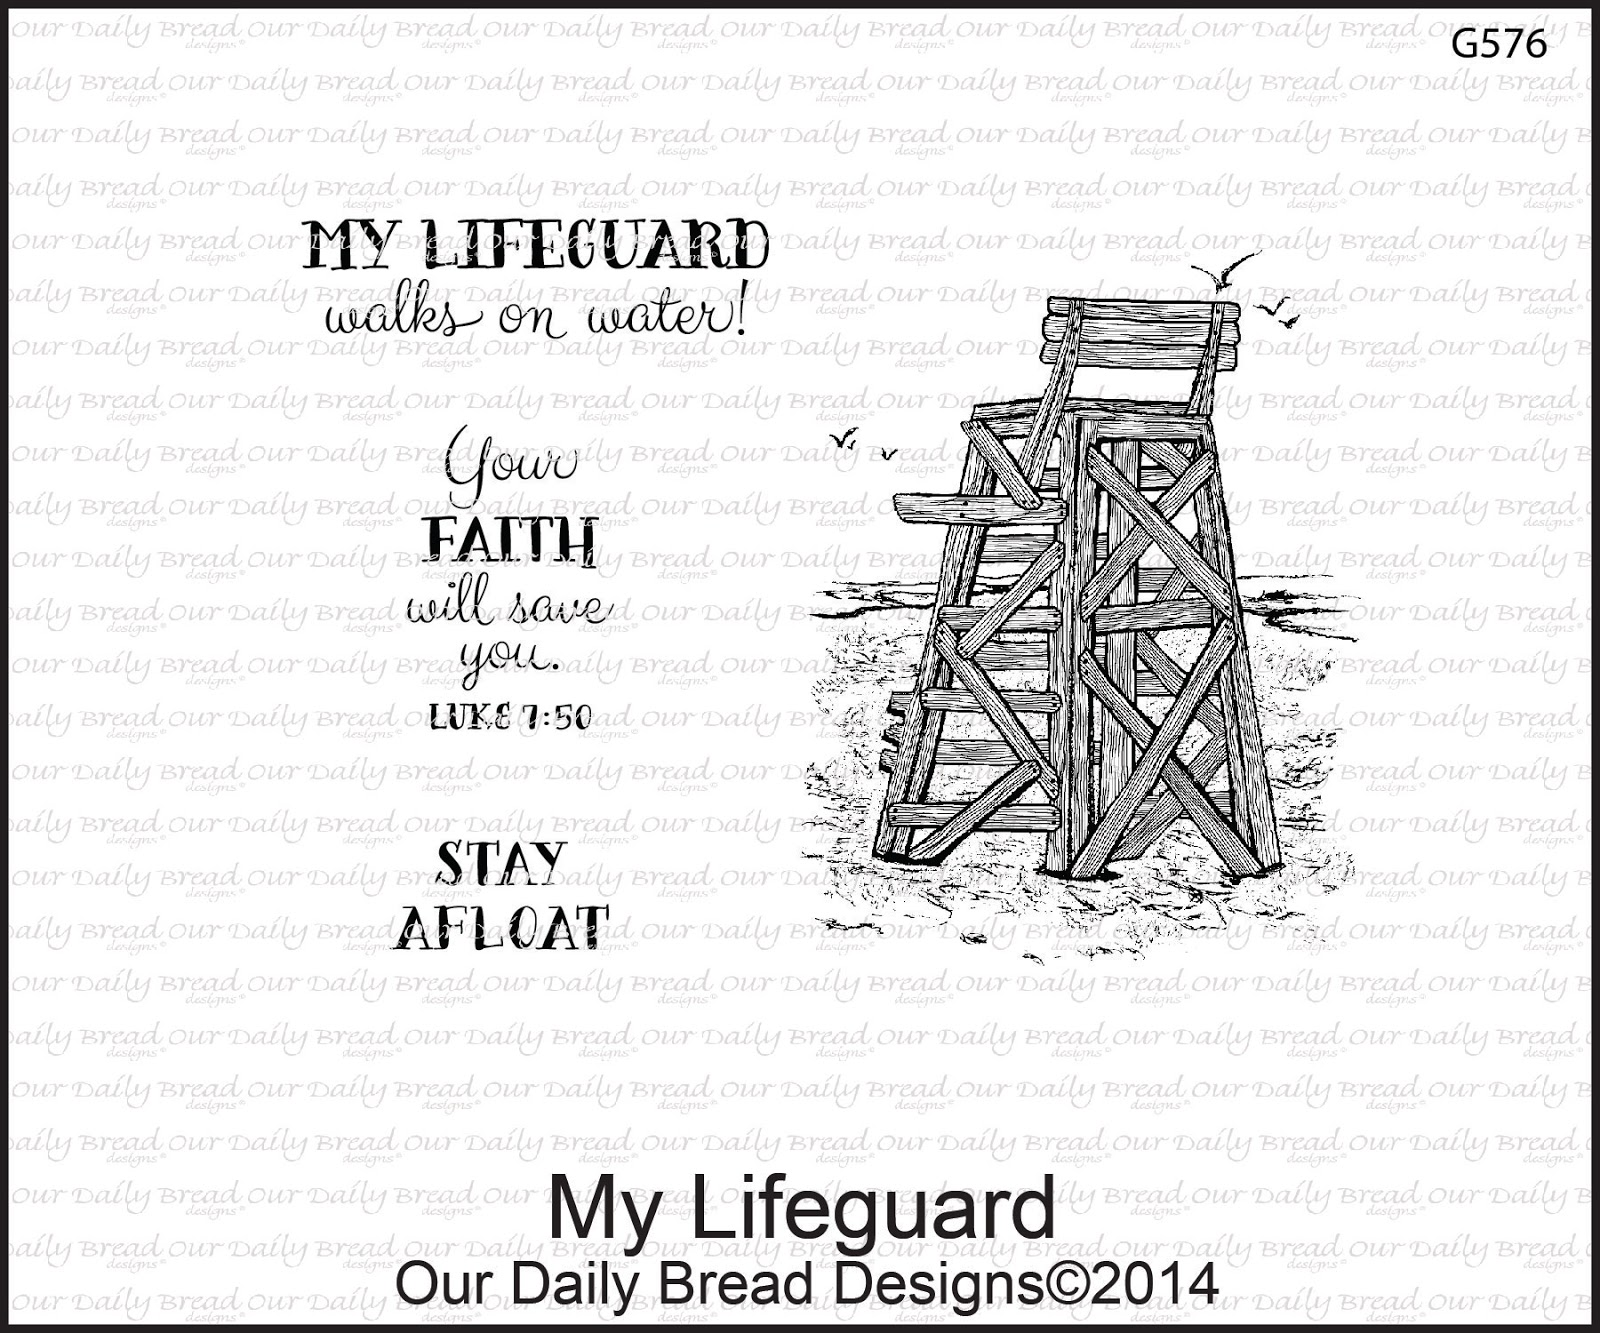 Stamps - Our Daily Bread Designs My Lifeguard